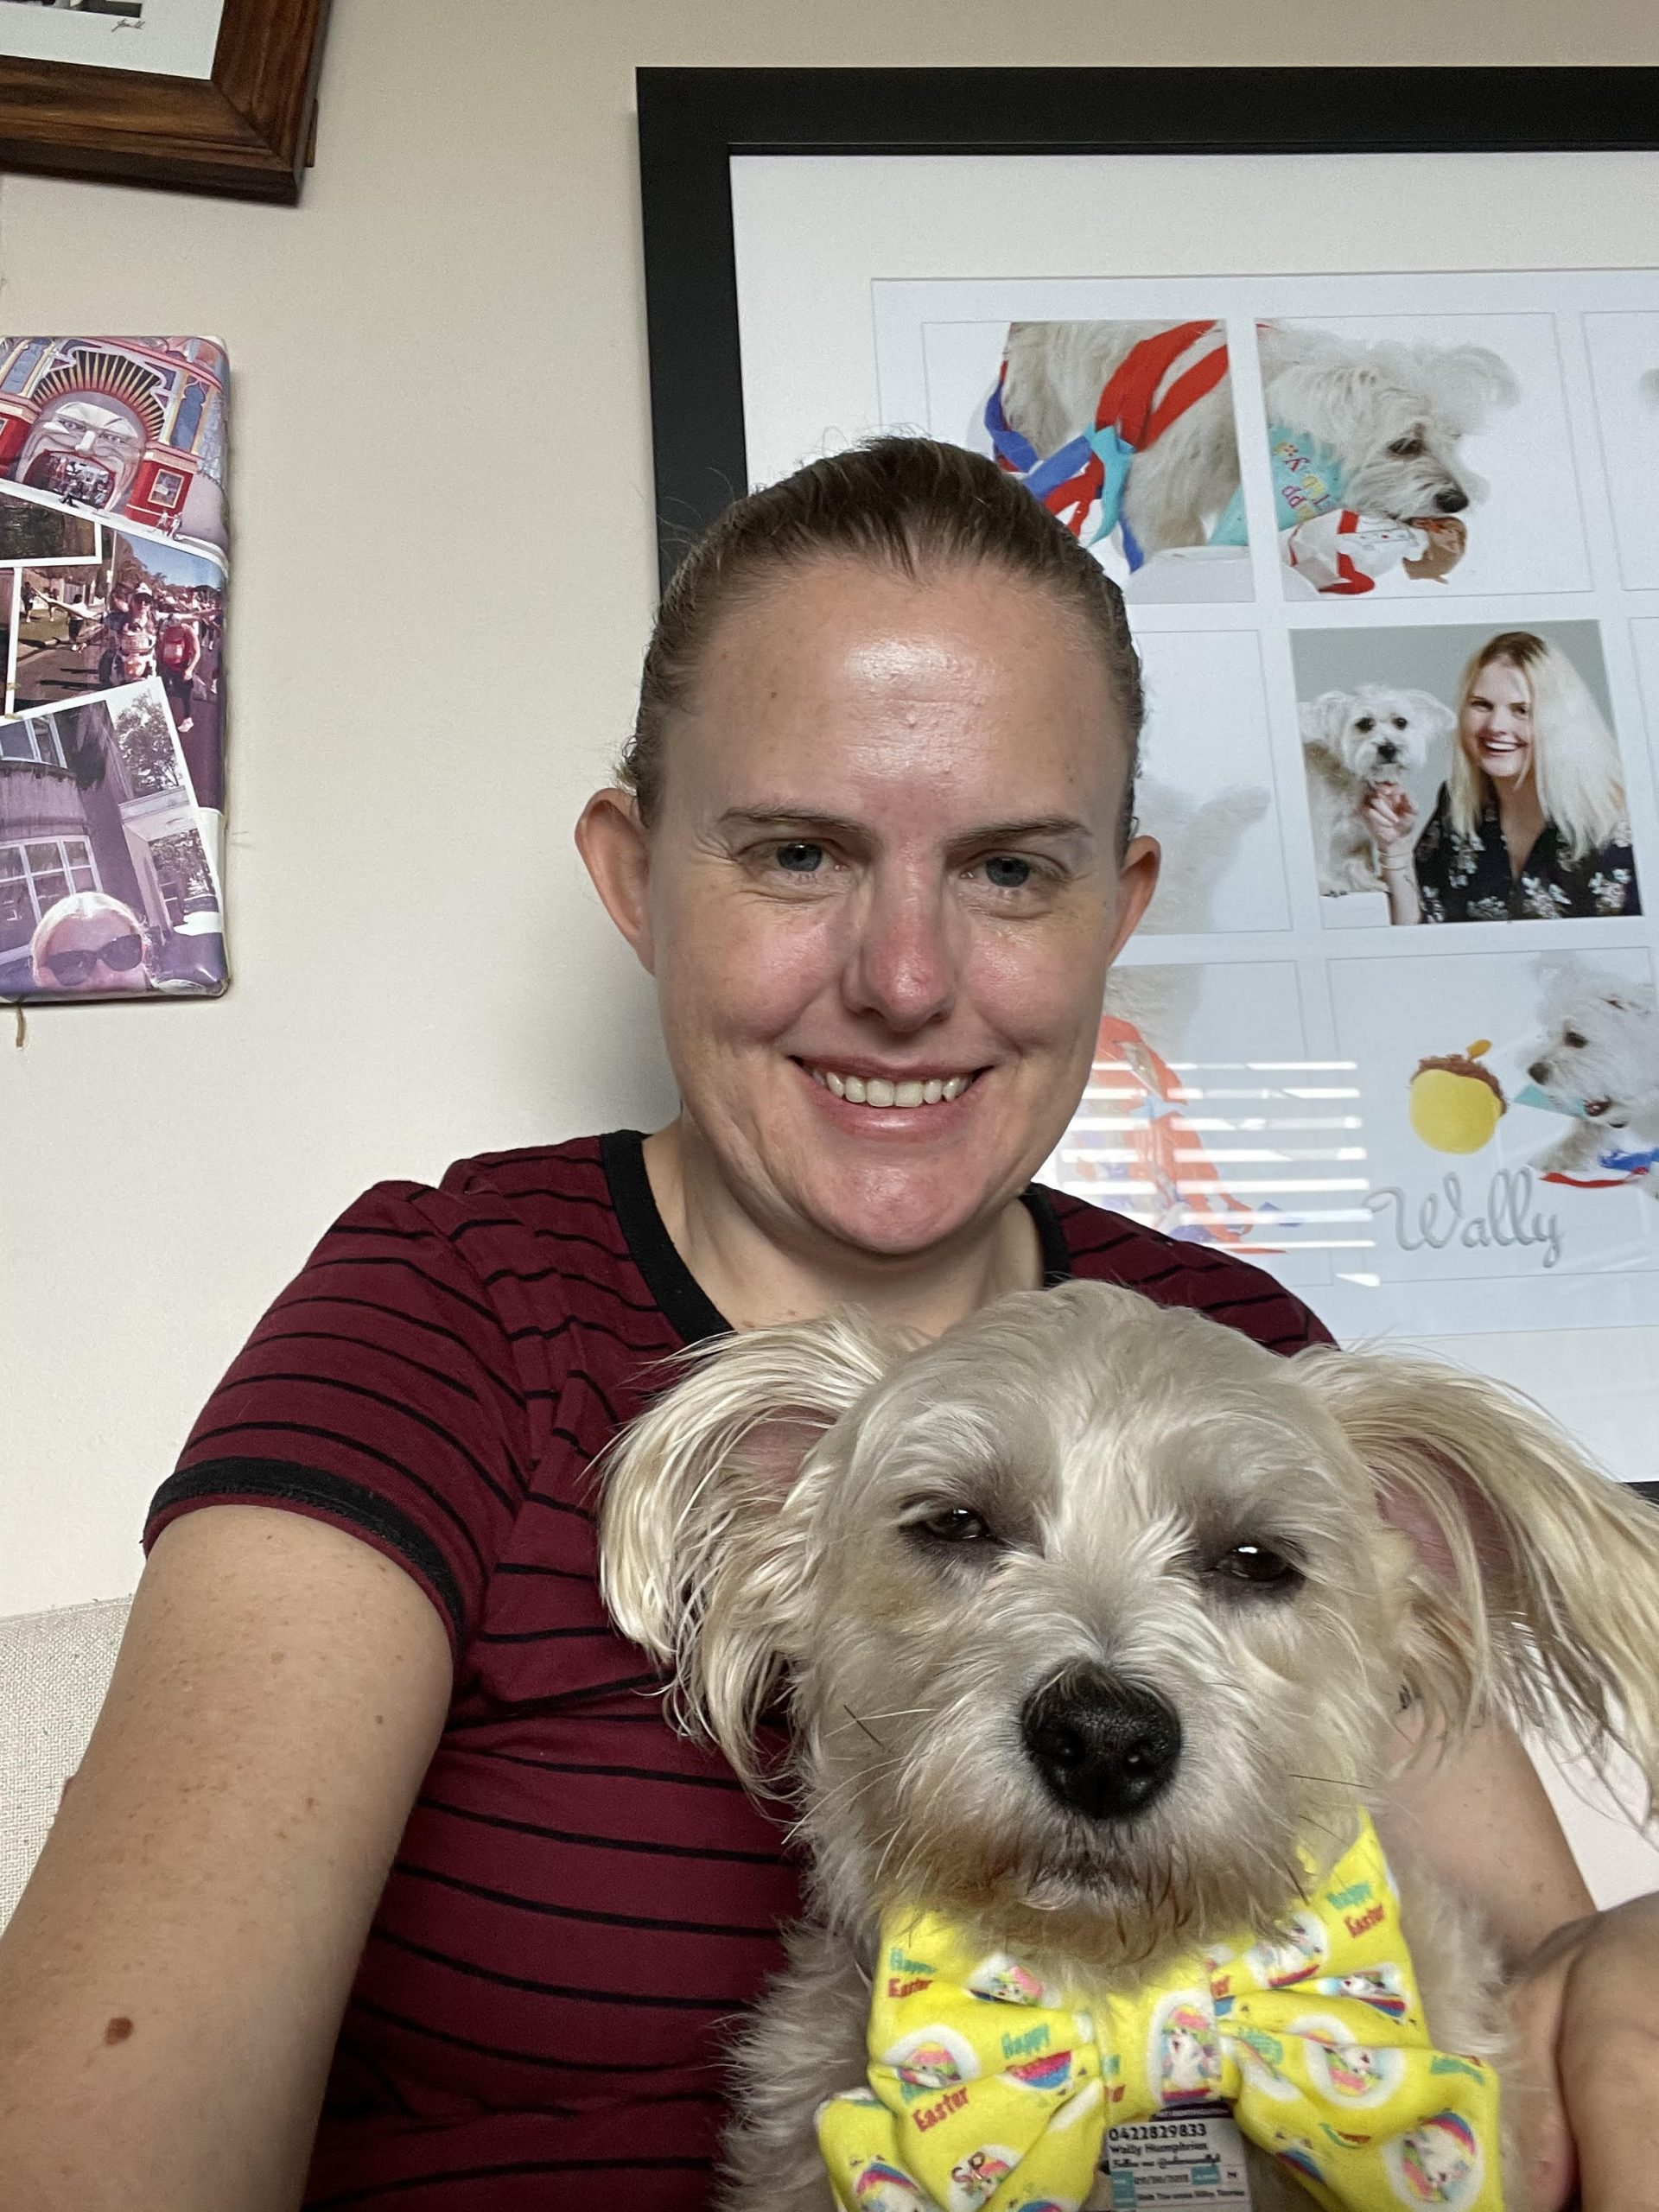 An image of Jody who has dark hair, light skin and a stripy red and black top. She's smiling and holding an adorable white dog in the foreground.